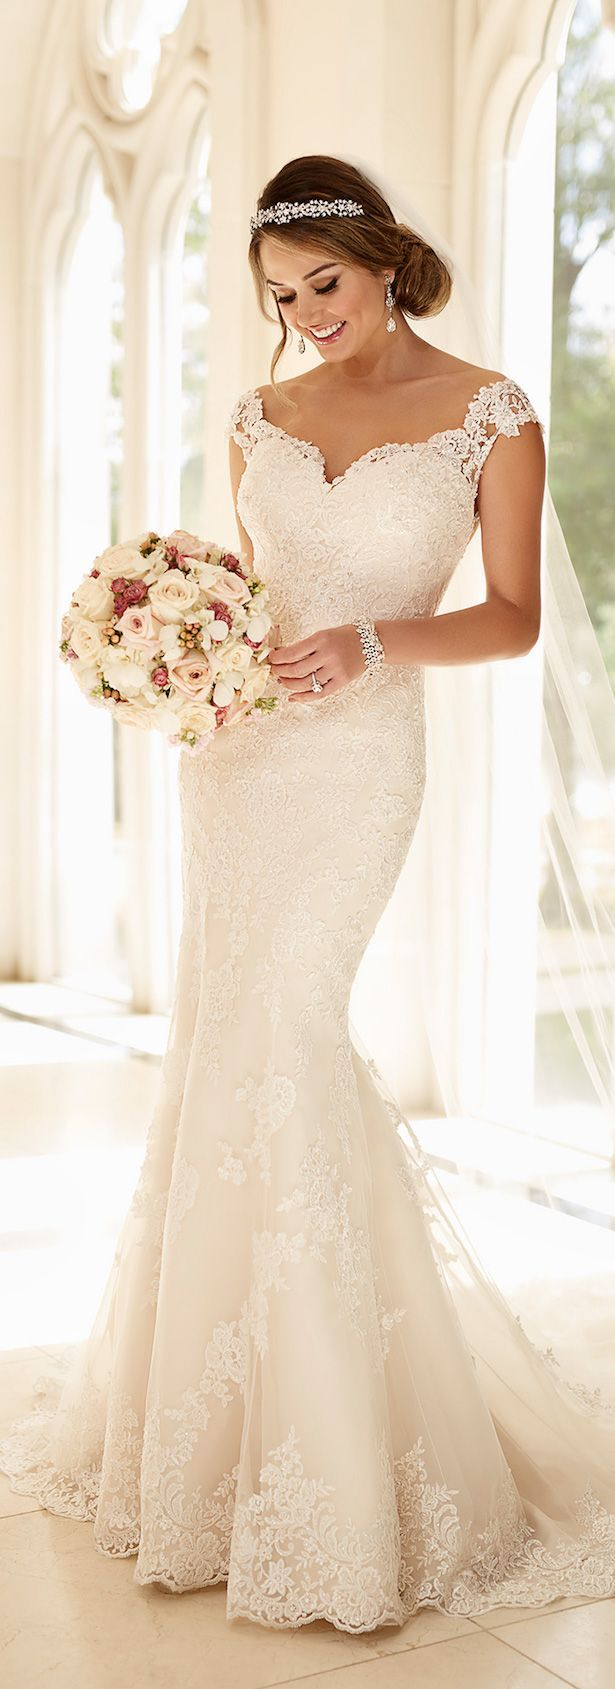 Amazing Stella York Spring 2016 Bridal Collection #WeddingDress